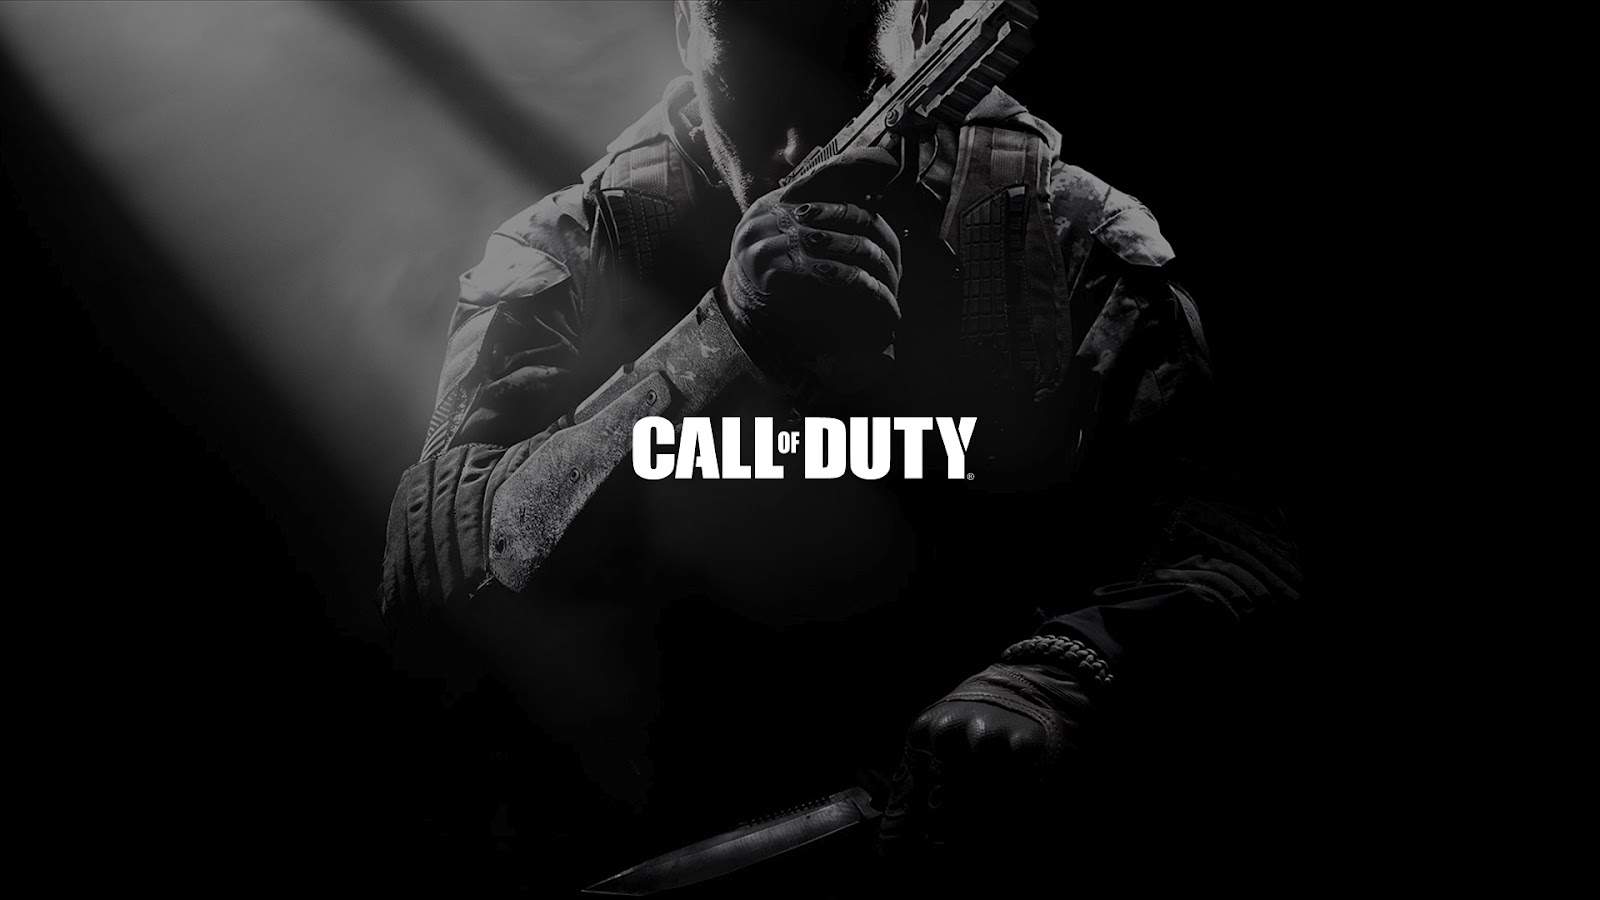 Call Of Duty Bo2 Wallpaper: Wallpaper: Black Ops 2 Full Hd Wallpapers